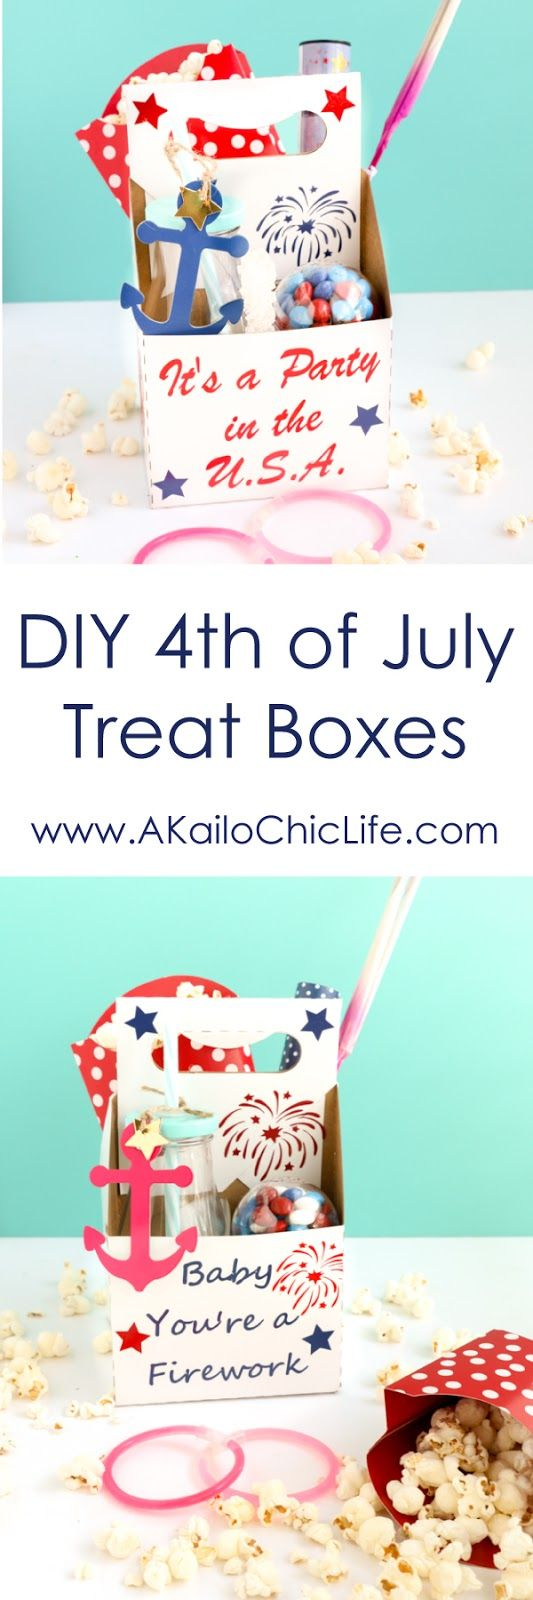 4th of July Kids treat boxes to take while watching fireworks, DIY picnic baskets, crafts, vinyl, adhesive vinyl, treat boxes, kid summer fun, silhouette cameo